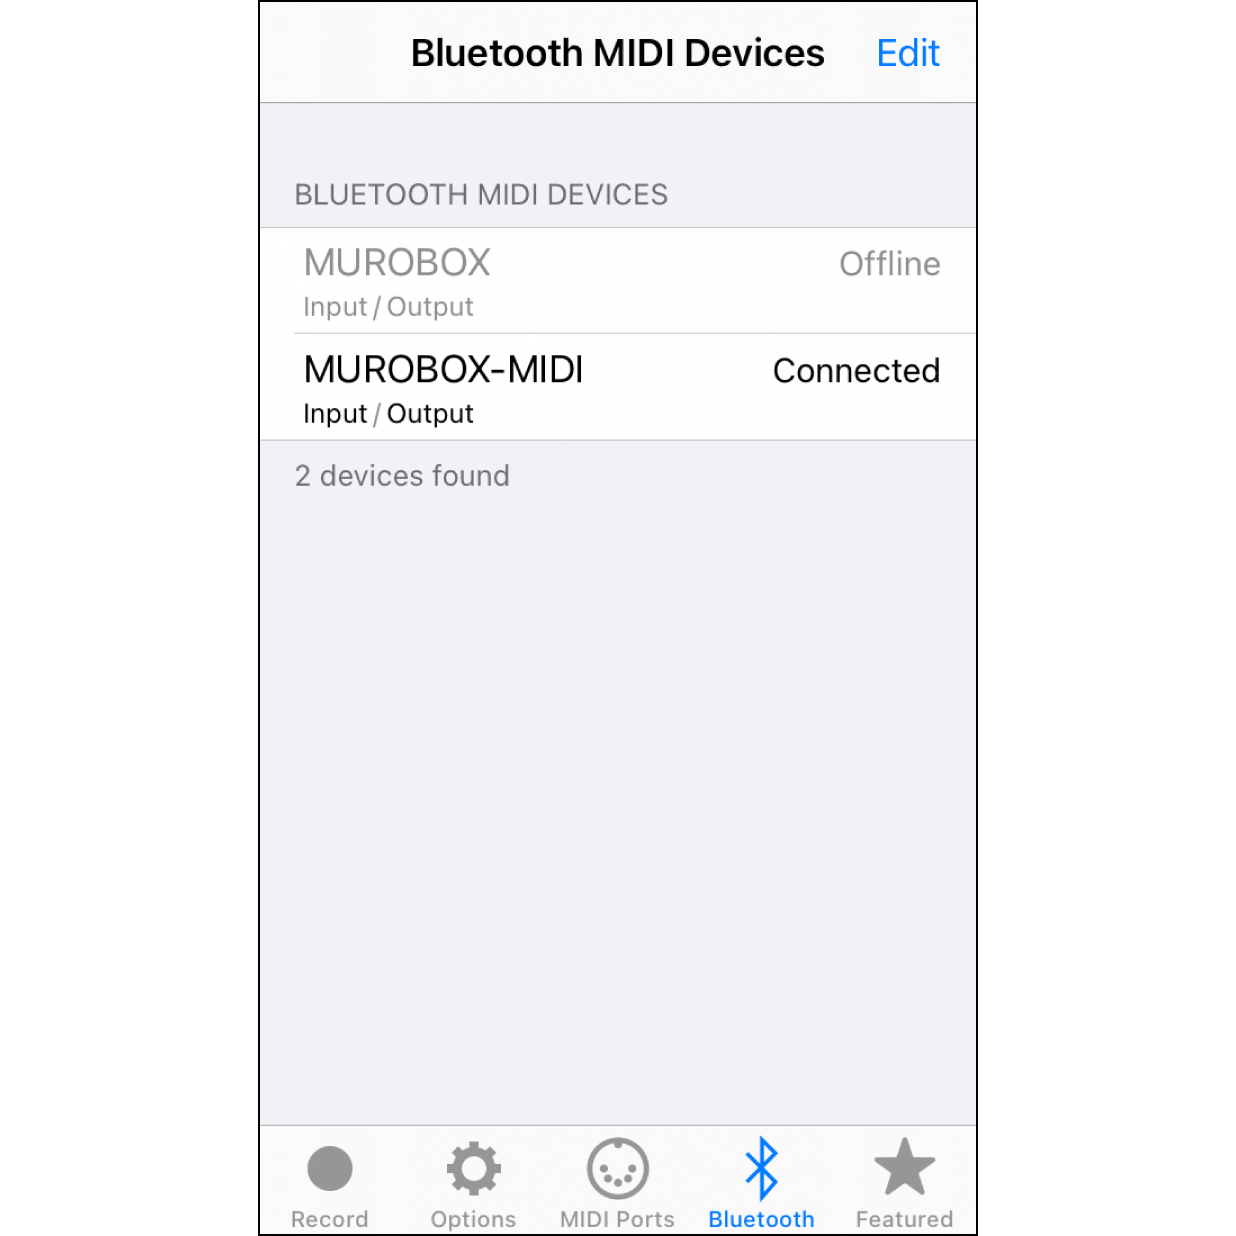 """3. Select the MIDI Device""""MUROBOX-MIDI"""" will show up in the list of options. Click this option for a few seconds, until its status shows as """"Connected""""."""